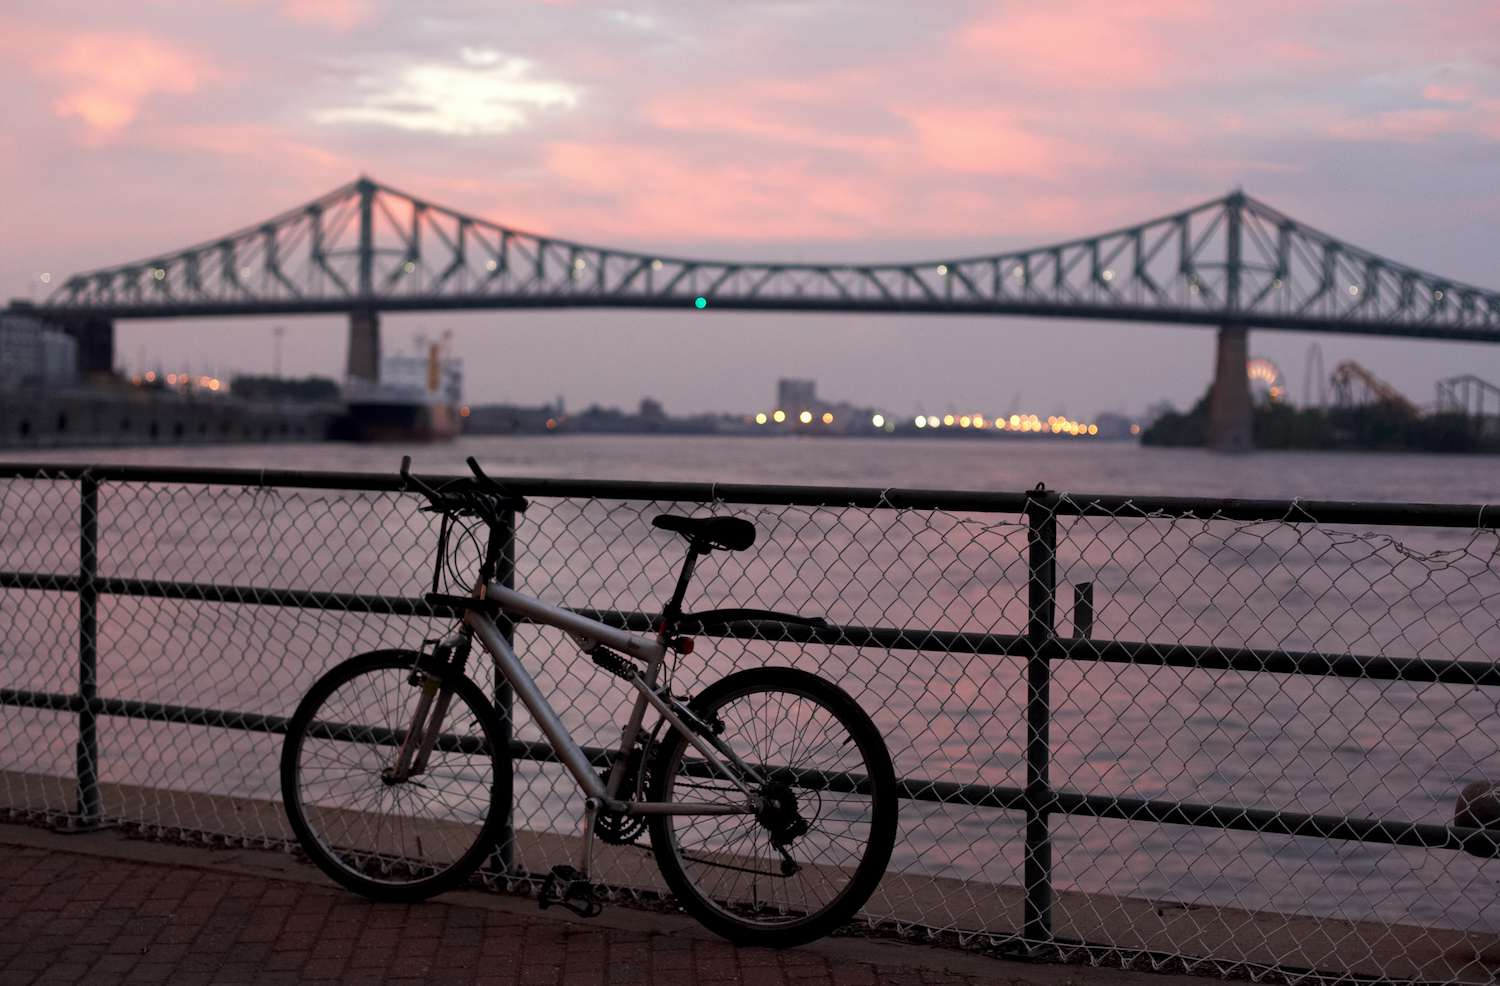 A bike leans against a railing in front of the Jacques Cartier Bridge in Montréal at sunset